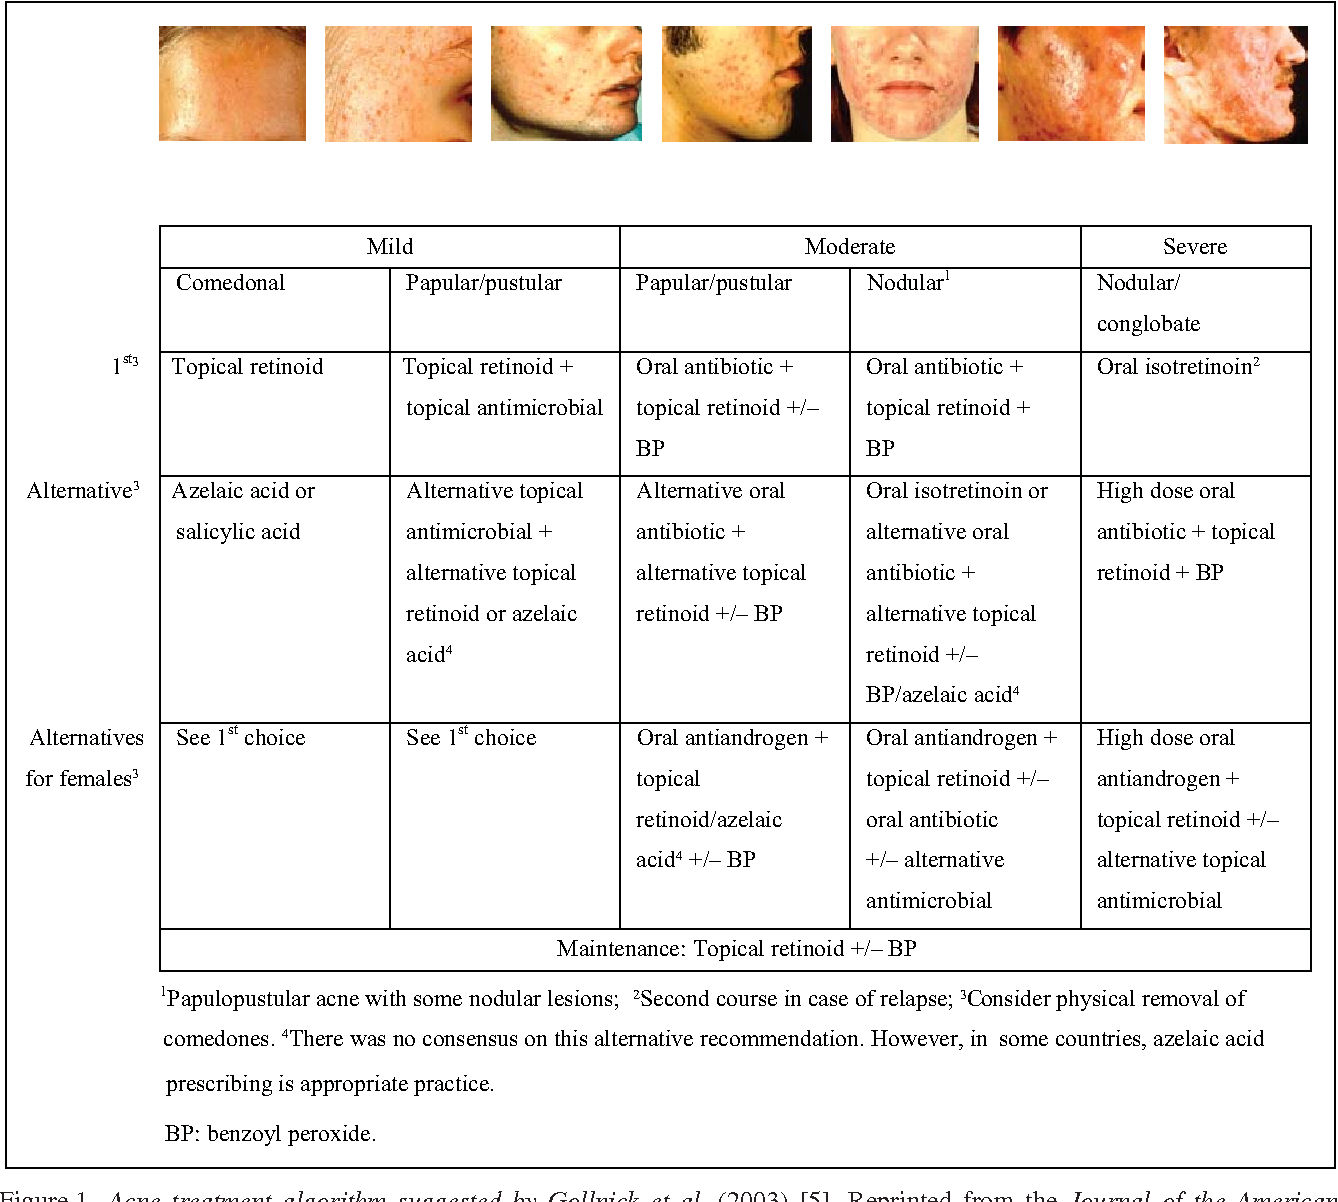 Figure 1 From European Recommendations On The Use Of Oral Antibiotics For Acne Semantic Scholar